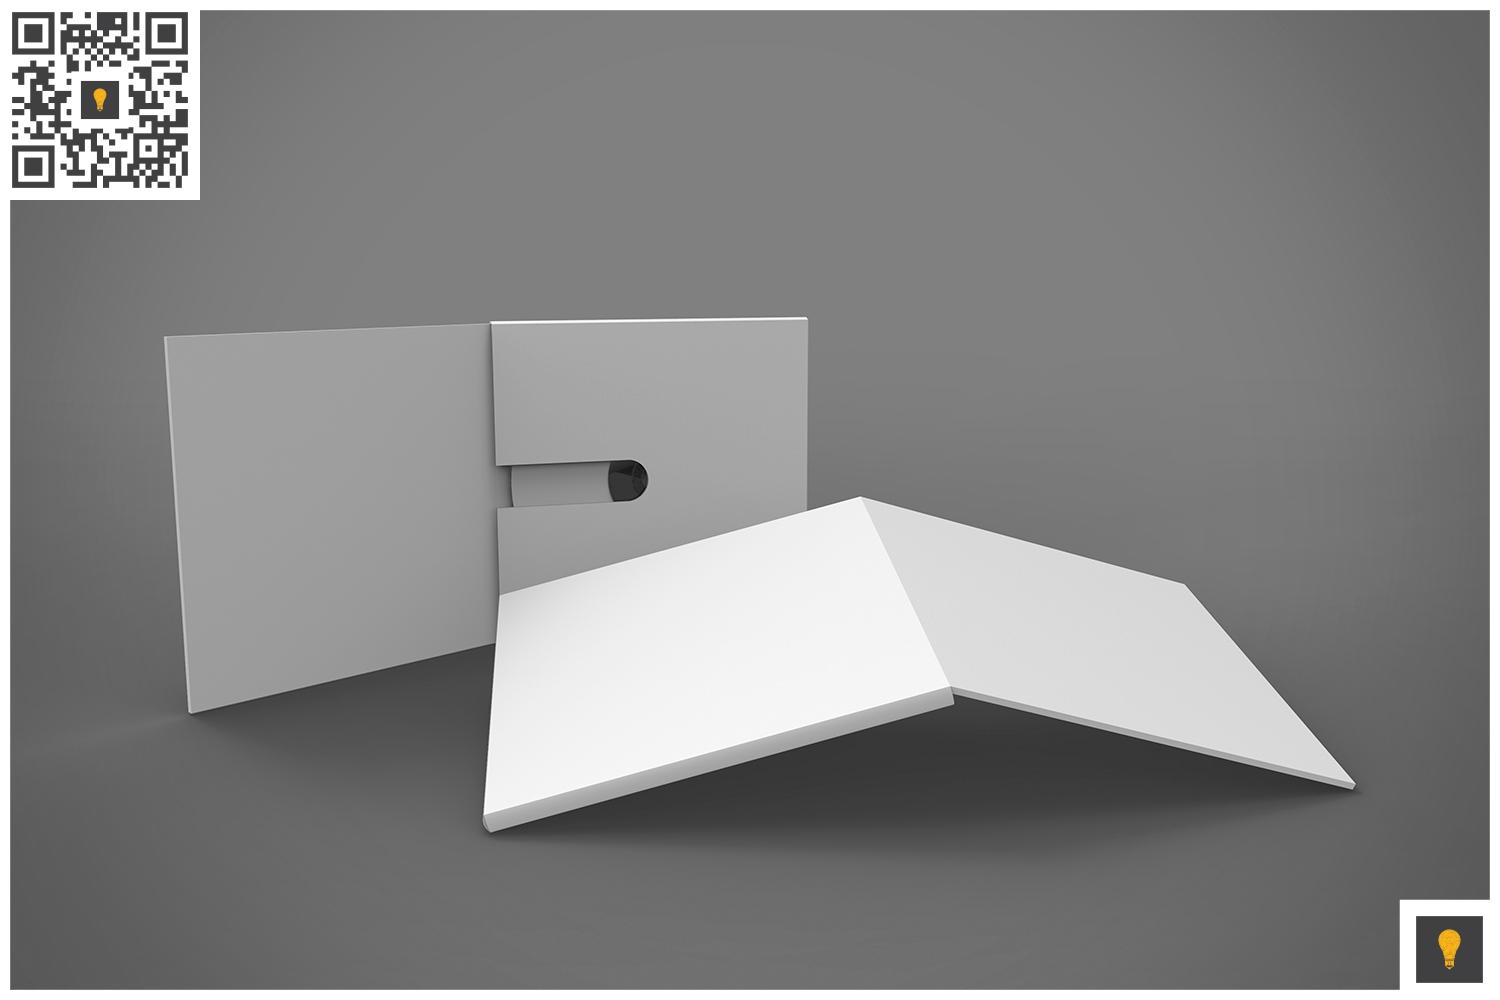 Branding Stationary 3D Render example image 3